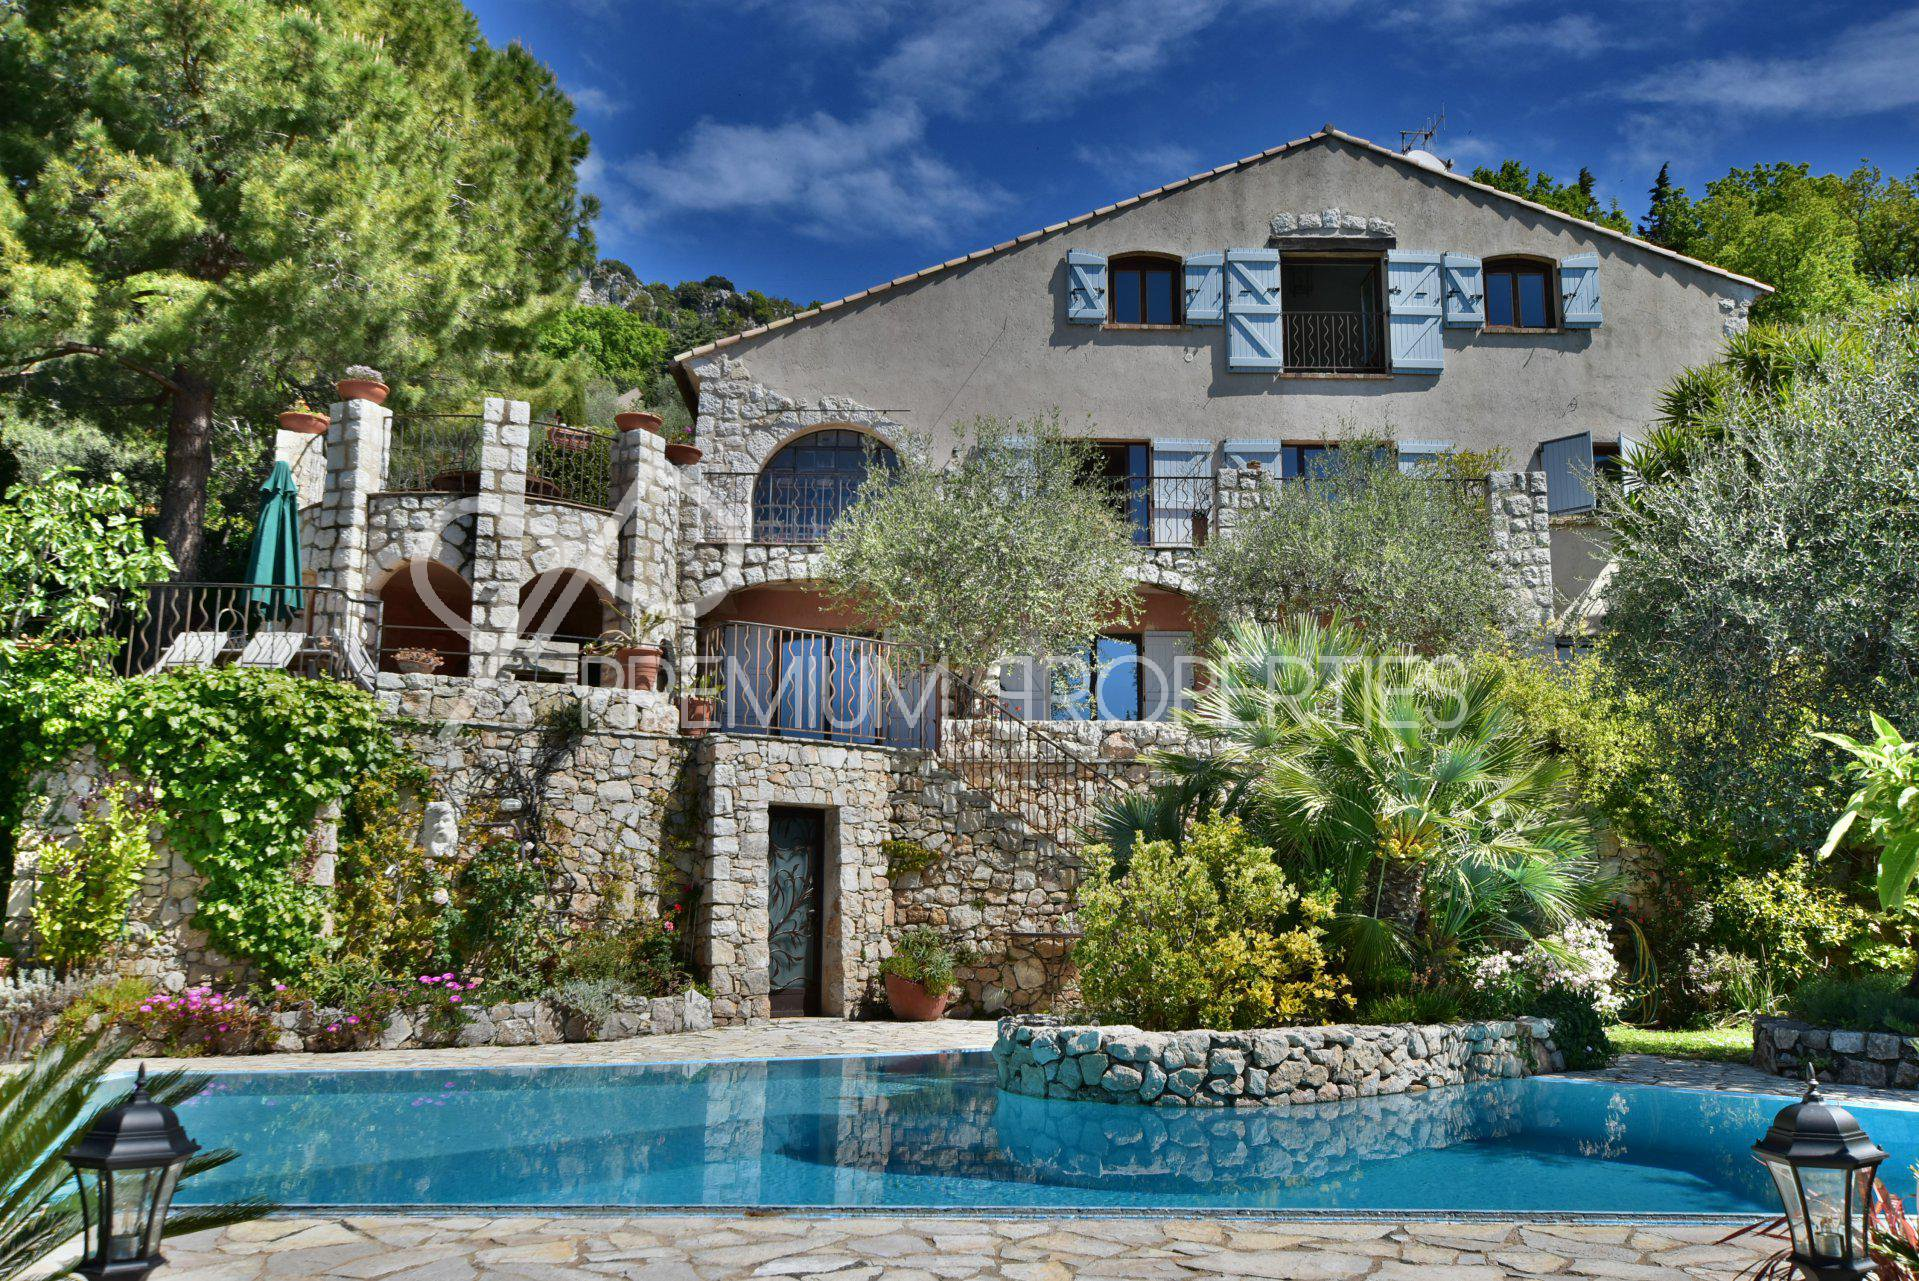 CHATEAUNEUF - STUNNING LOCATION